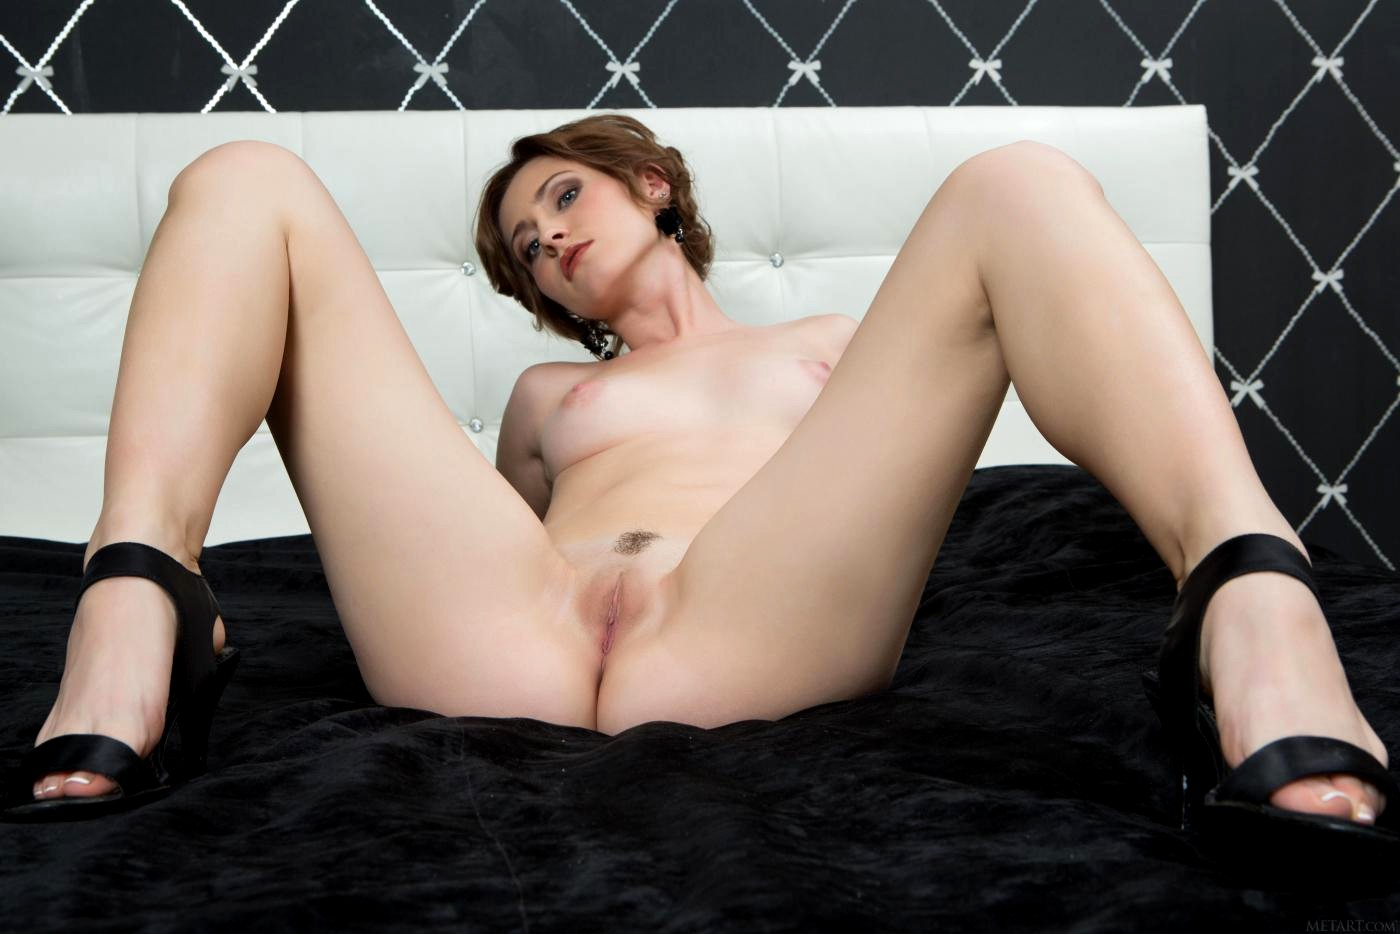 Janelle Taylor Opens Her Legs Wide For You